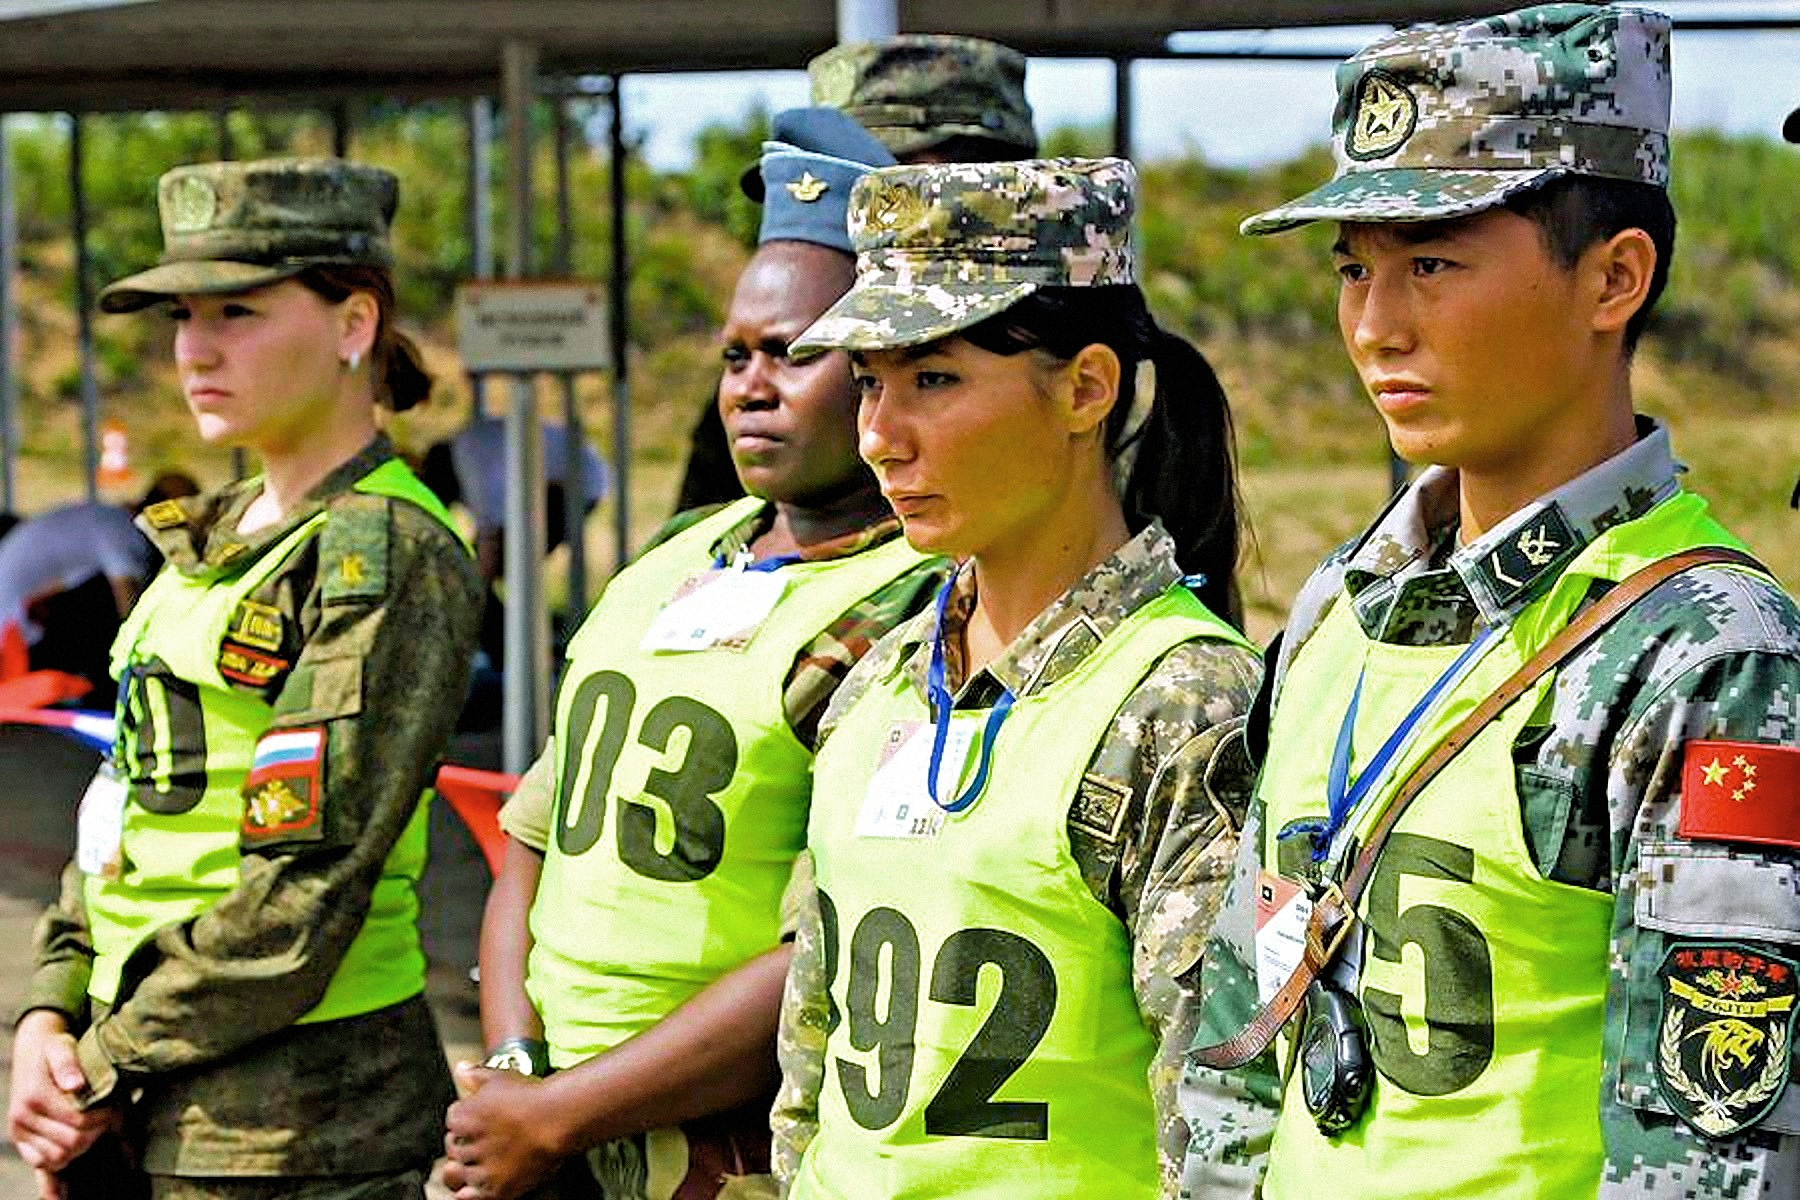 00 female soldiers china russia kazakhstan zimbabwe 050816